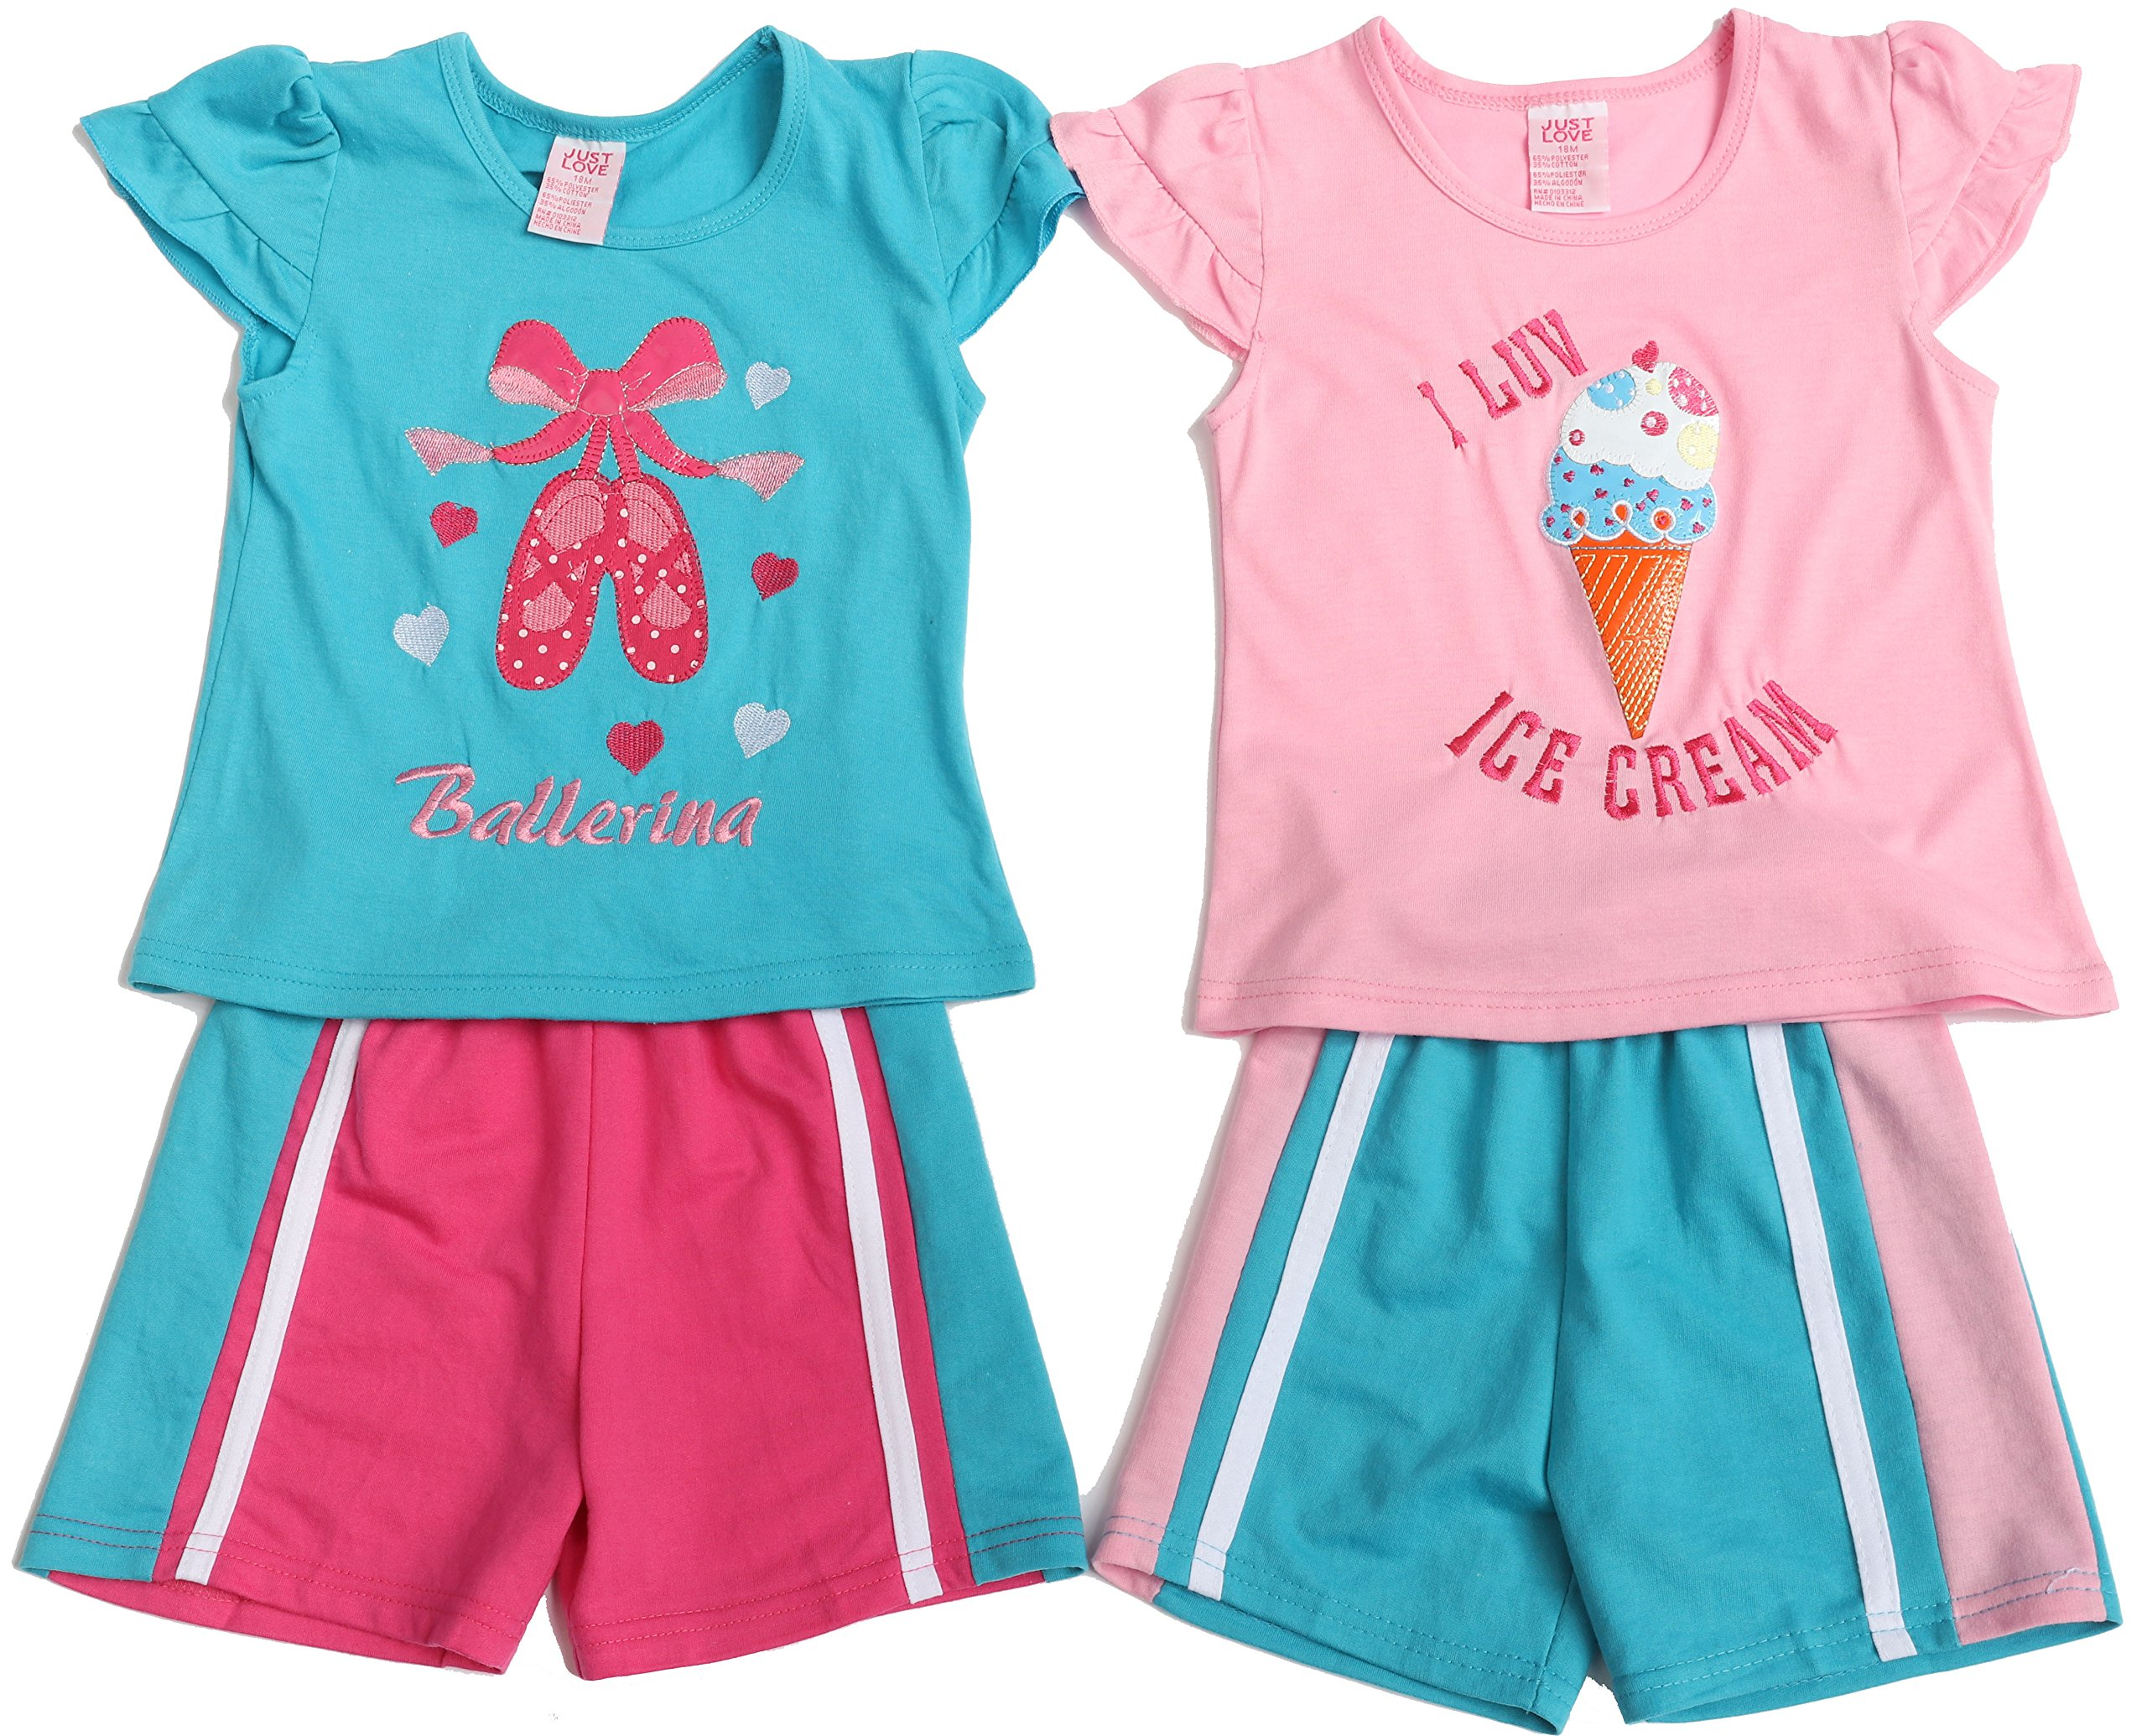 Just Love 44057-4T Two Piece Short Set (Pack of 2)